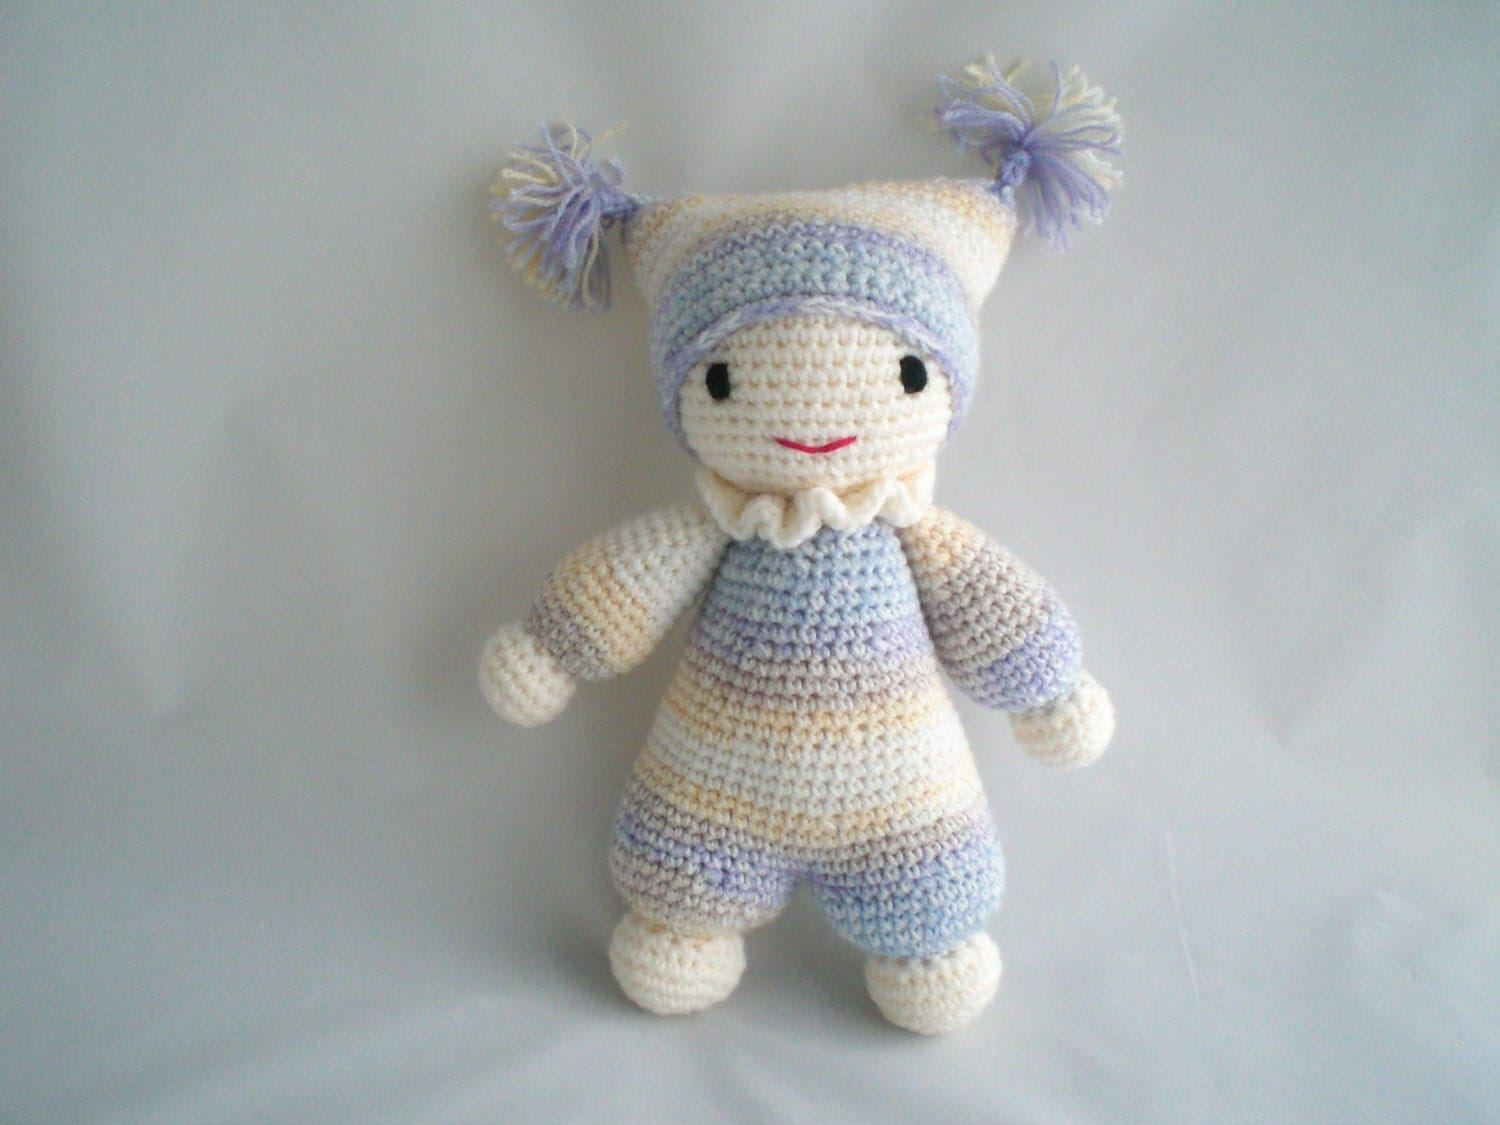 Crochet Baby Doll / Crochet Amigurumi Baby Doll / Super Cute